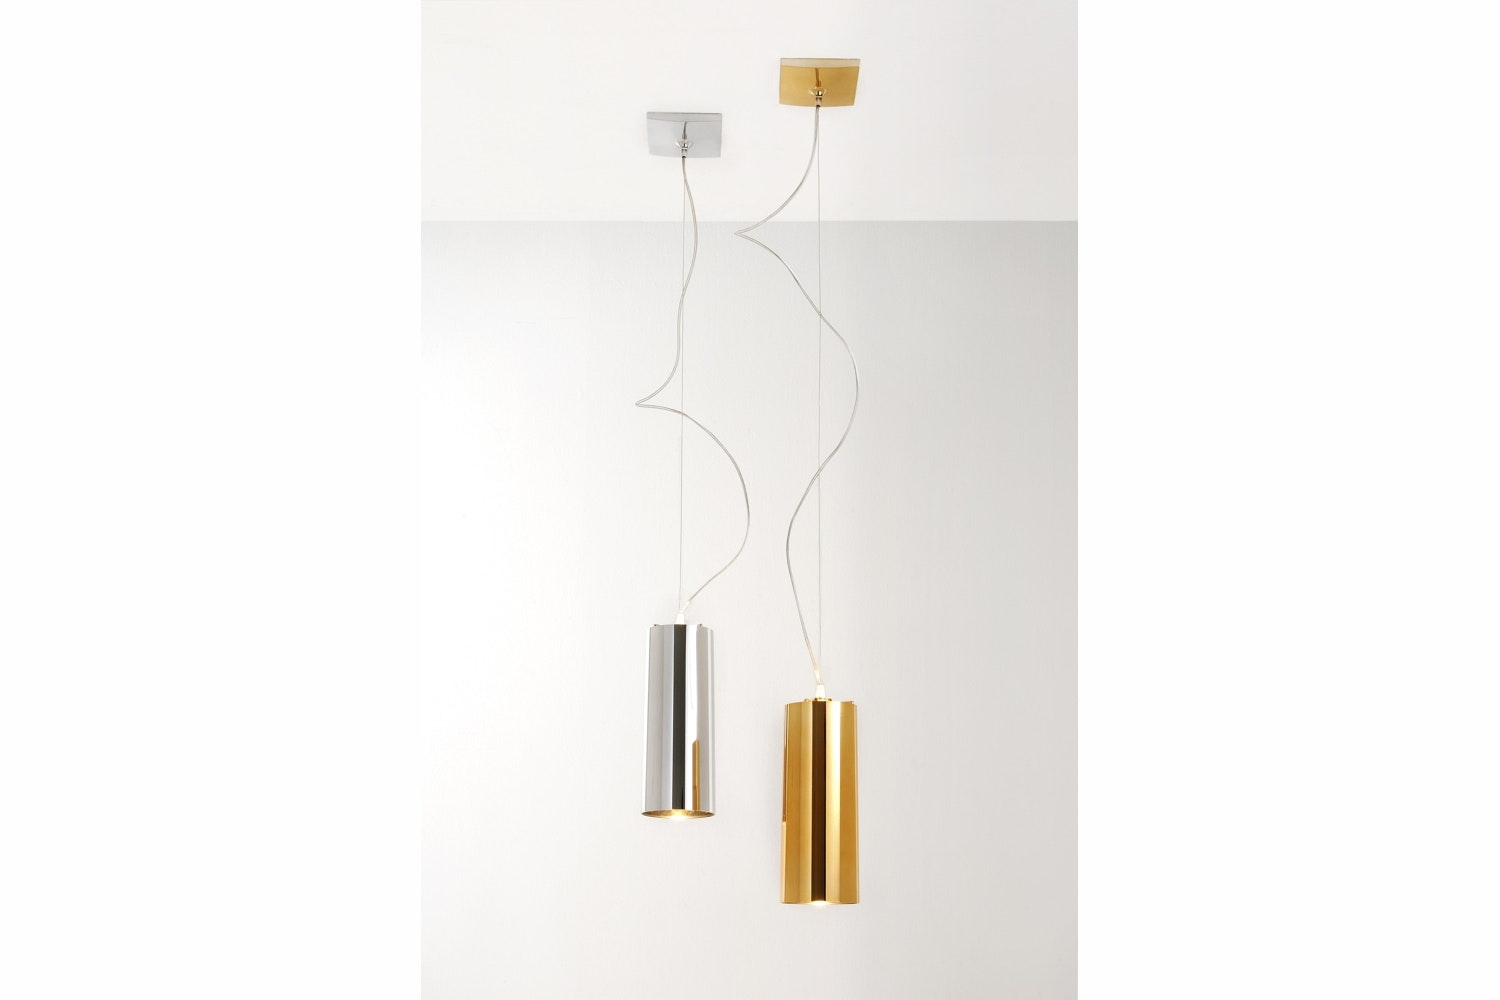 Easy Metallic Suspension Lamp by Ferruccio Laviani for Kartell